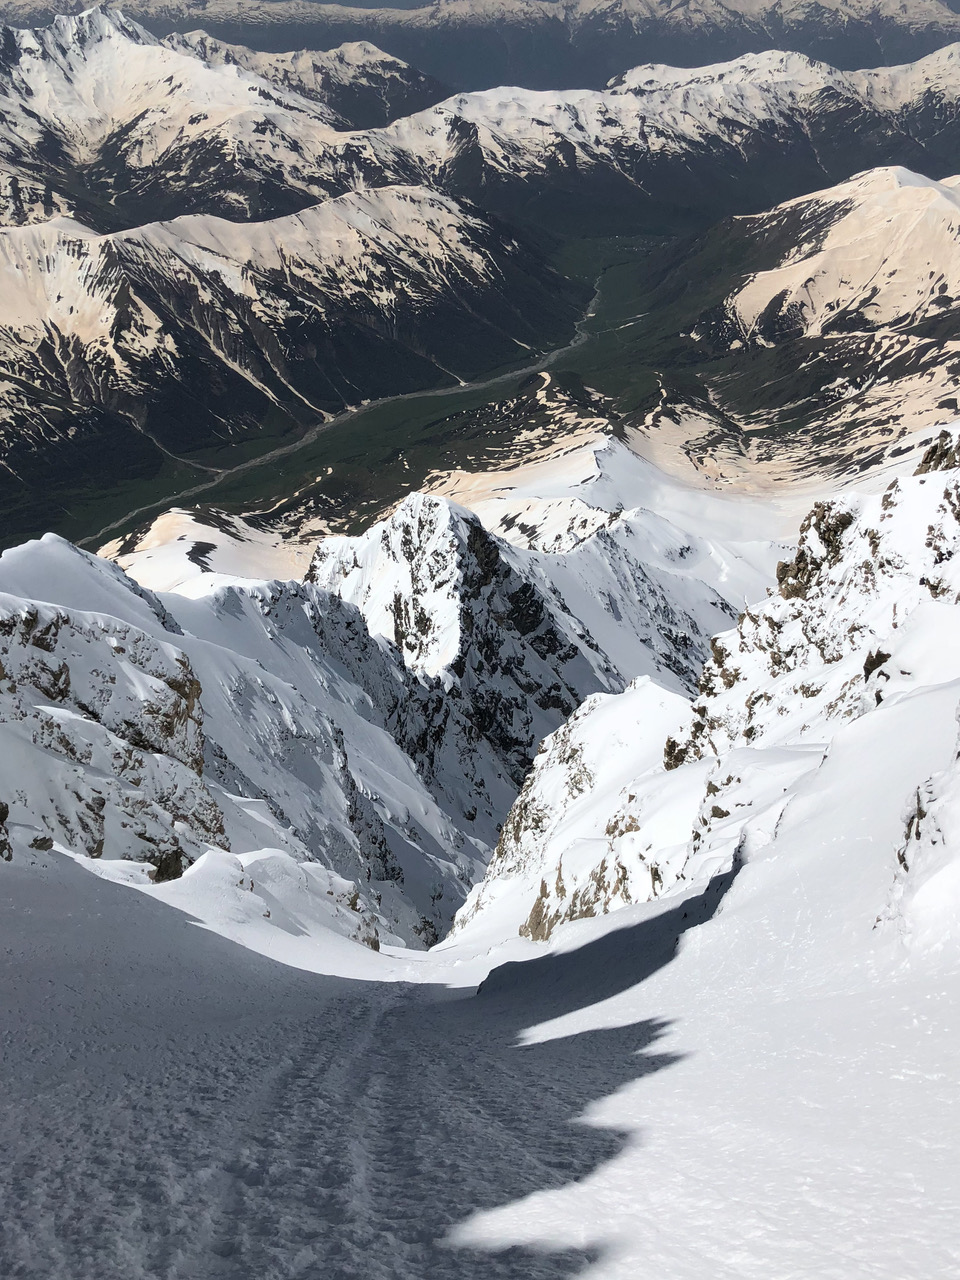 The view down the southwest couloir from high on Shkhara West.